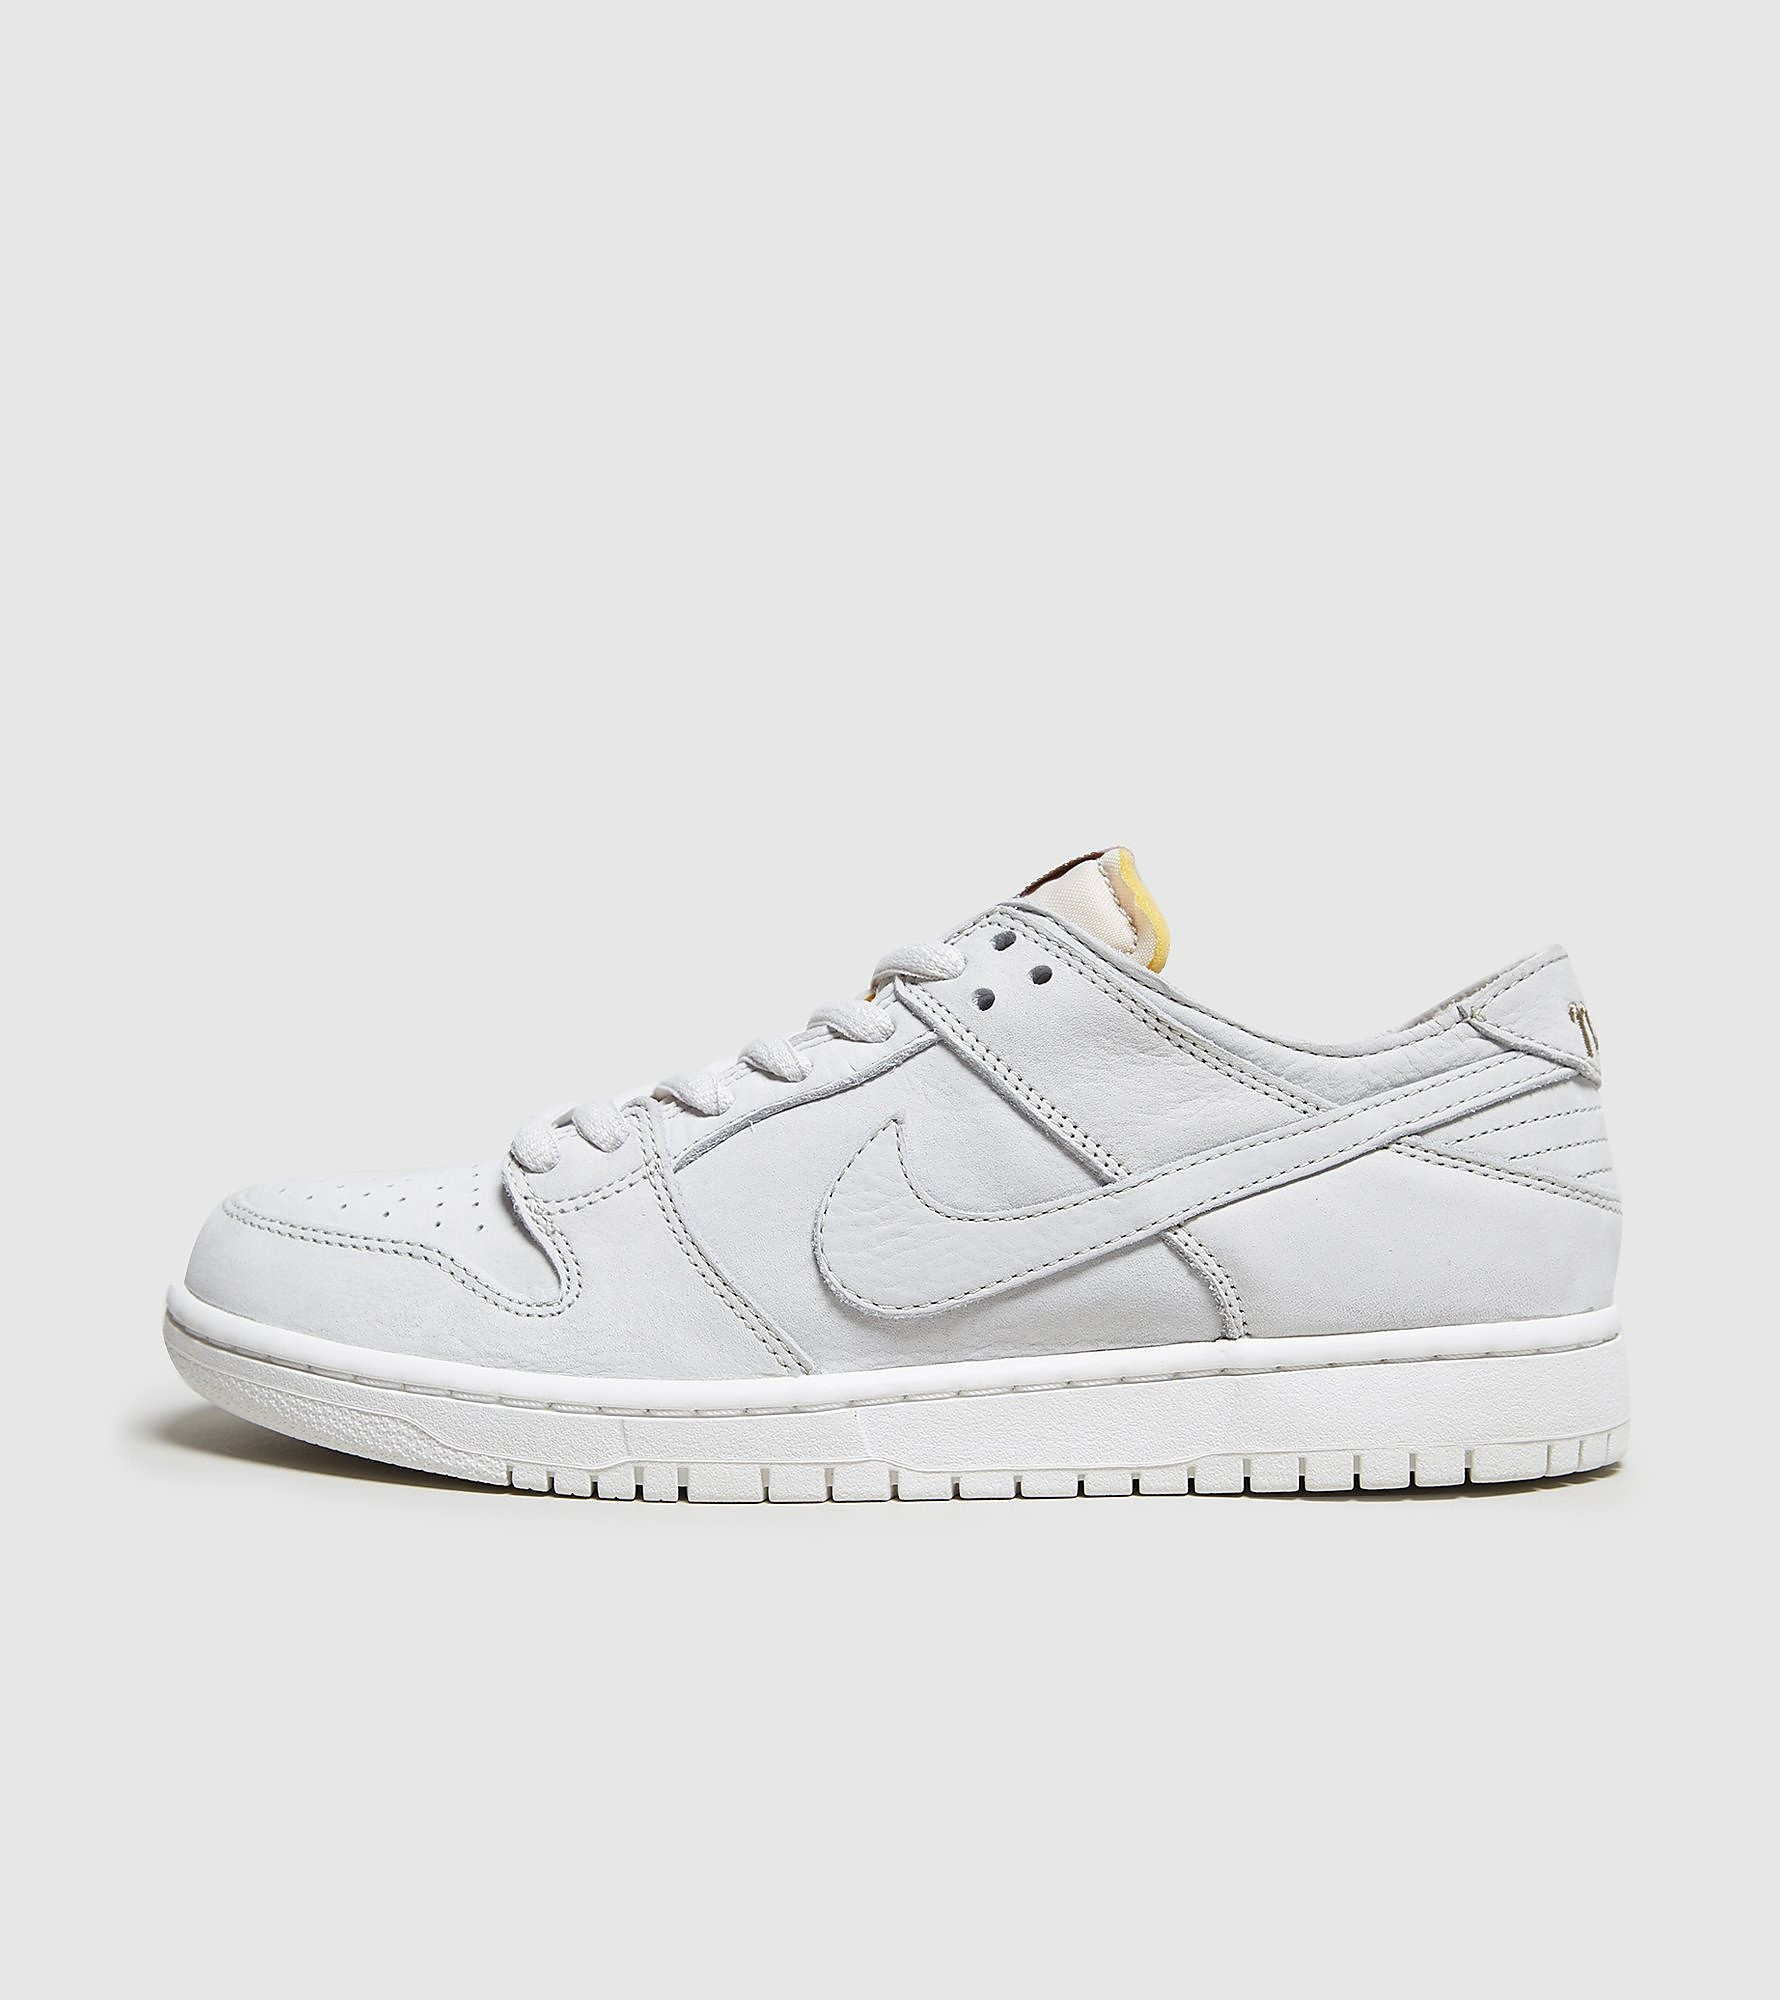 Nike SB Zoom Dunk Low Pro Deconstructed, blanco